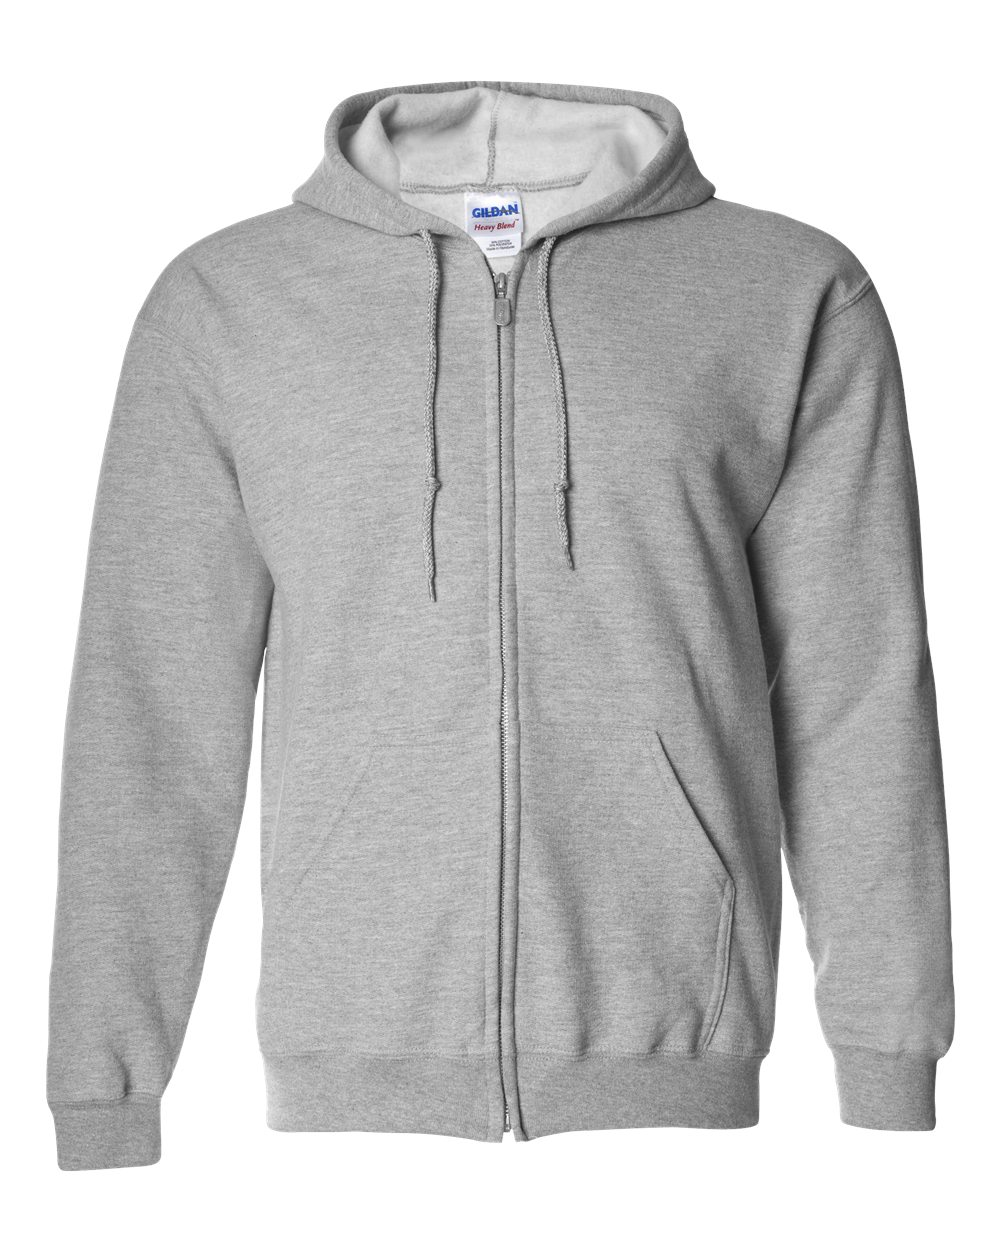 Picture of Gildan Heavyweight Blend Adult Full Zip Hooded Sweatshirt